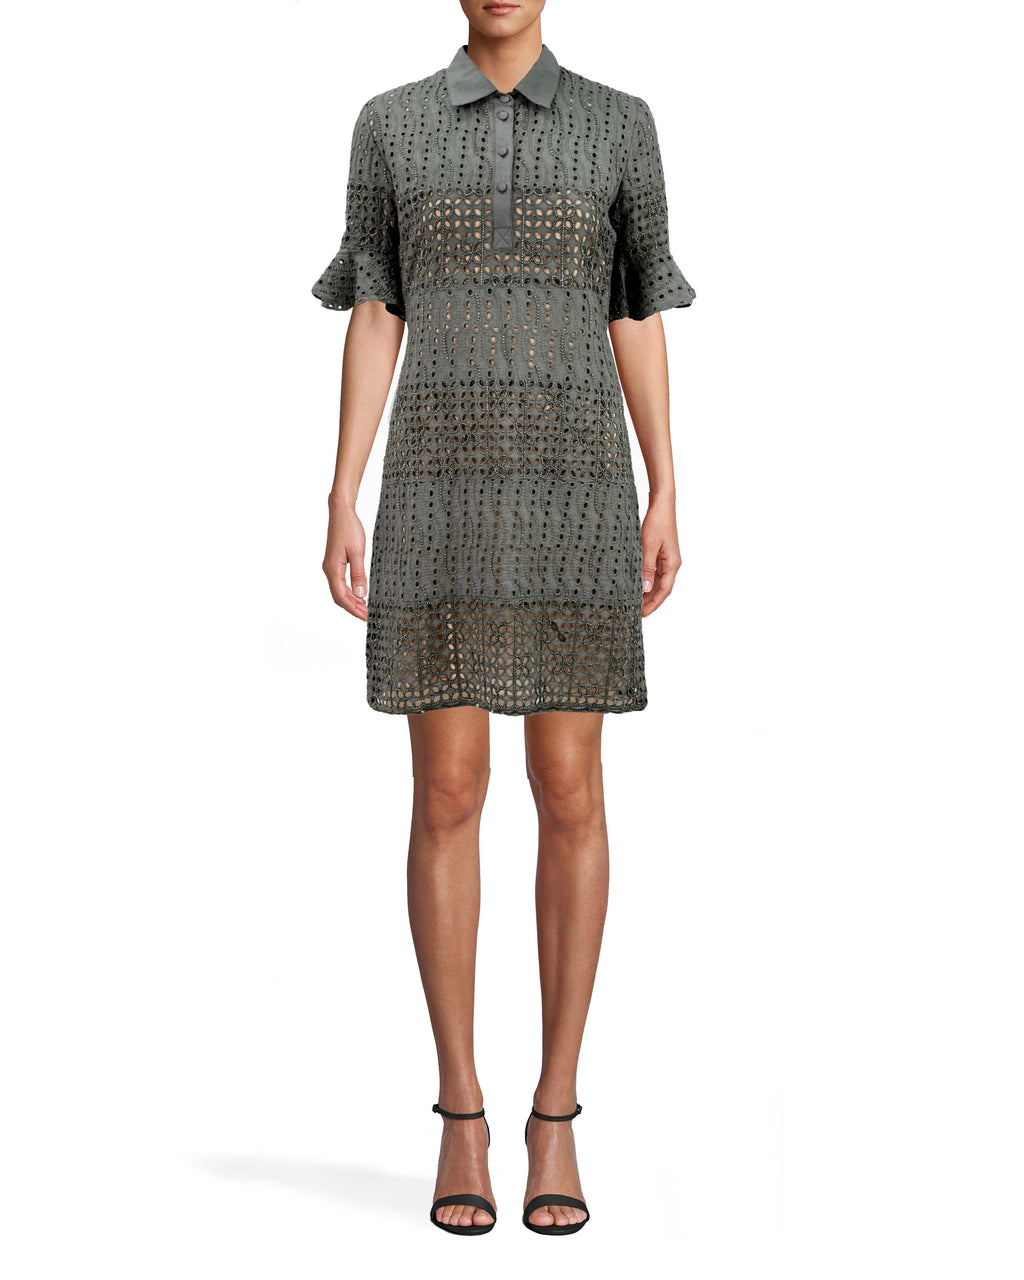 CA10278 - BEADED EYELET BELL SLEEVE SHIRT DRESS - dresses - short - THIS EYELET MINI DRESS FEATURES STATEMENT BELL SLEEVES, A CHIC COLLAR AND BEADING THROUGHOUT. NUDE SLIP UNDERNEATH. Add 1 line break STYLIST TIP: WEAR WITH STRAPPY SANDALS AND A SET OF GOLD BRACELETS.